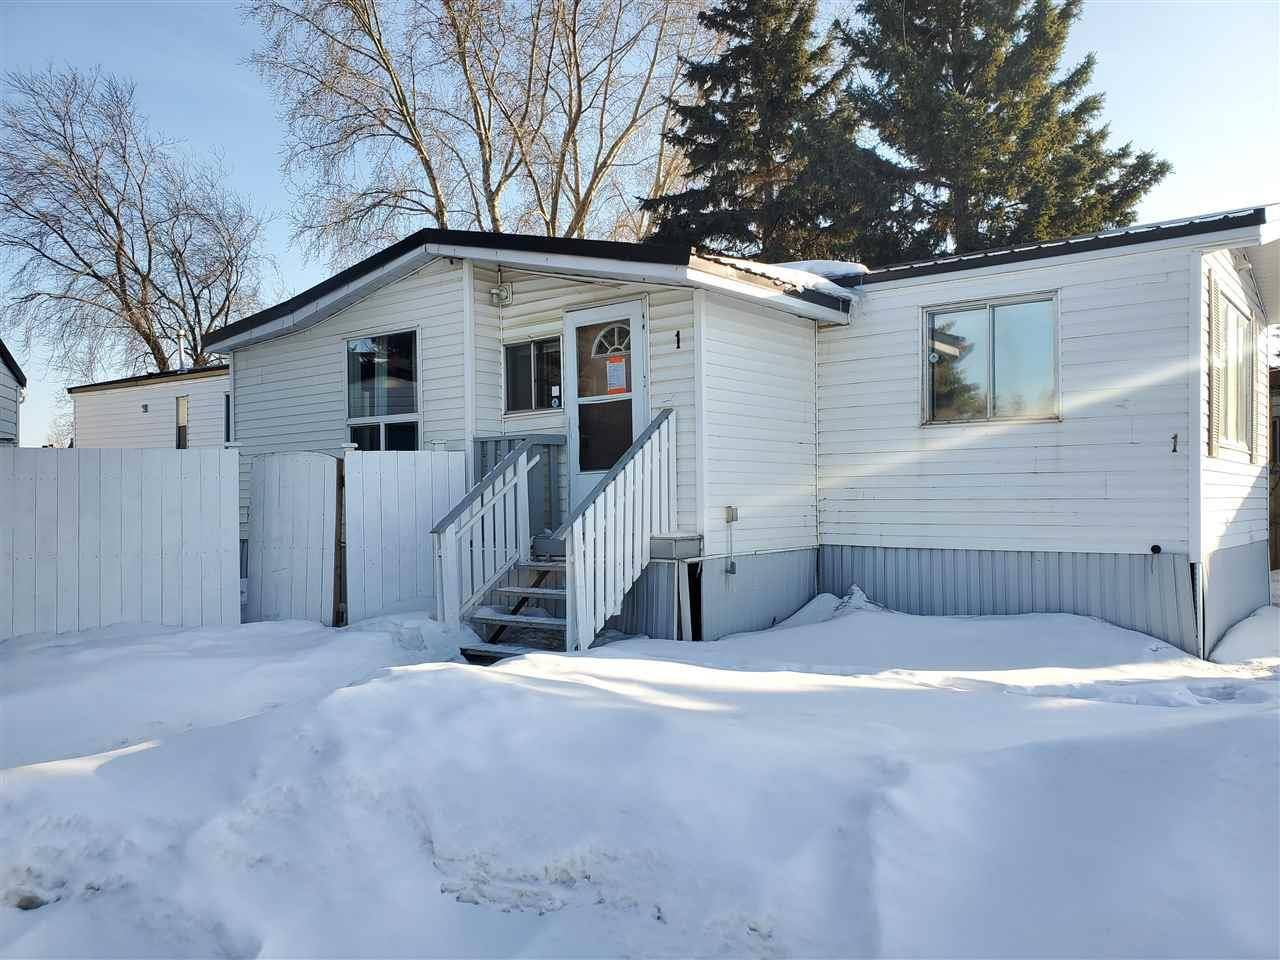 Residential property for sale at 1 West View Blvd Nw Edmonton Alberta - MLS: E4193738